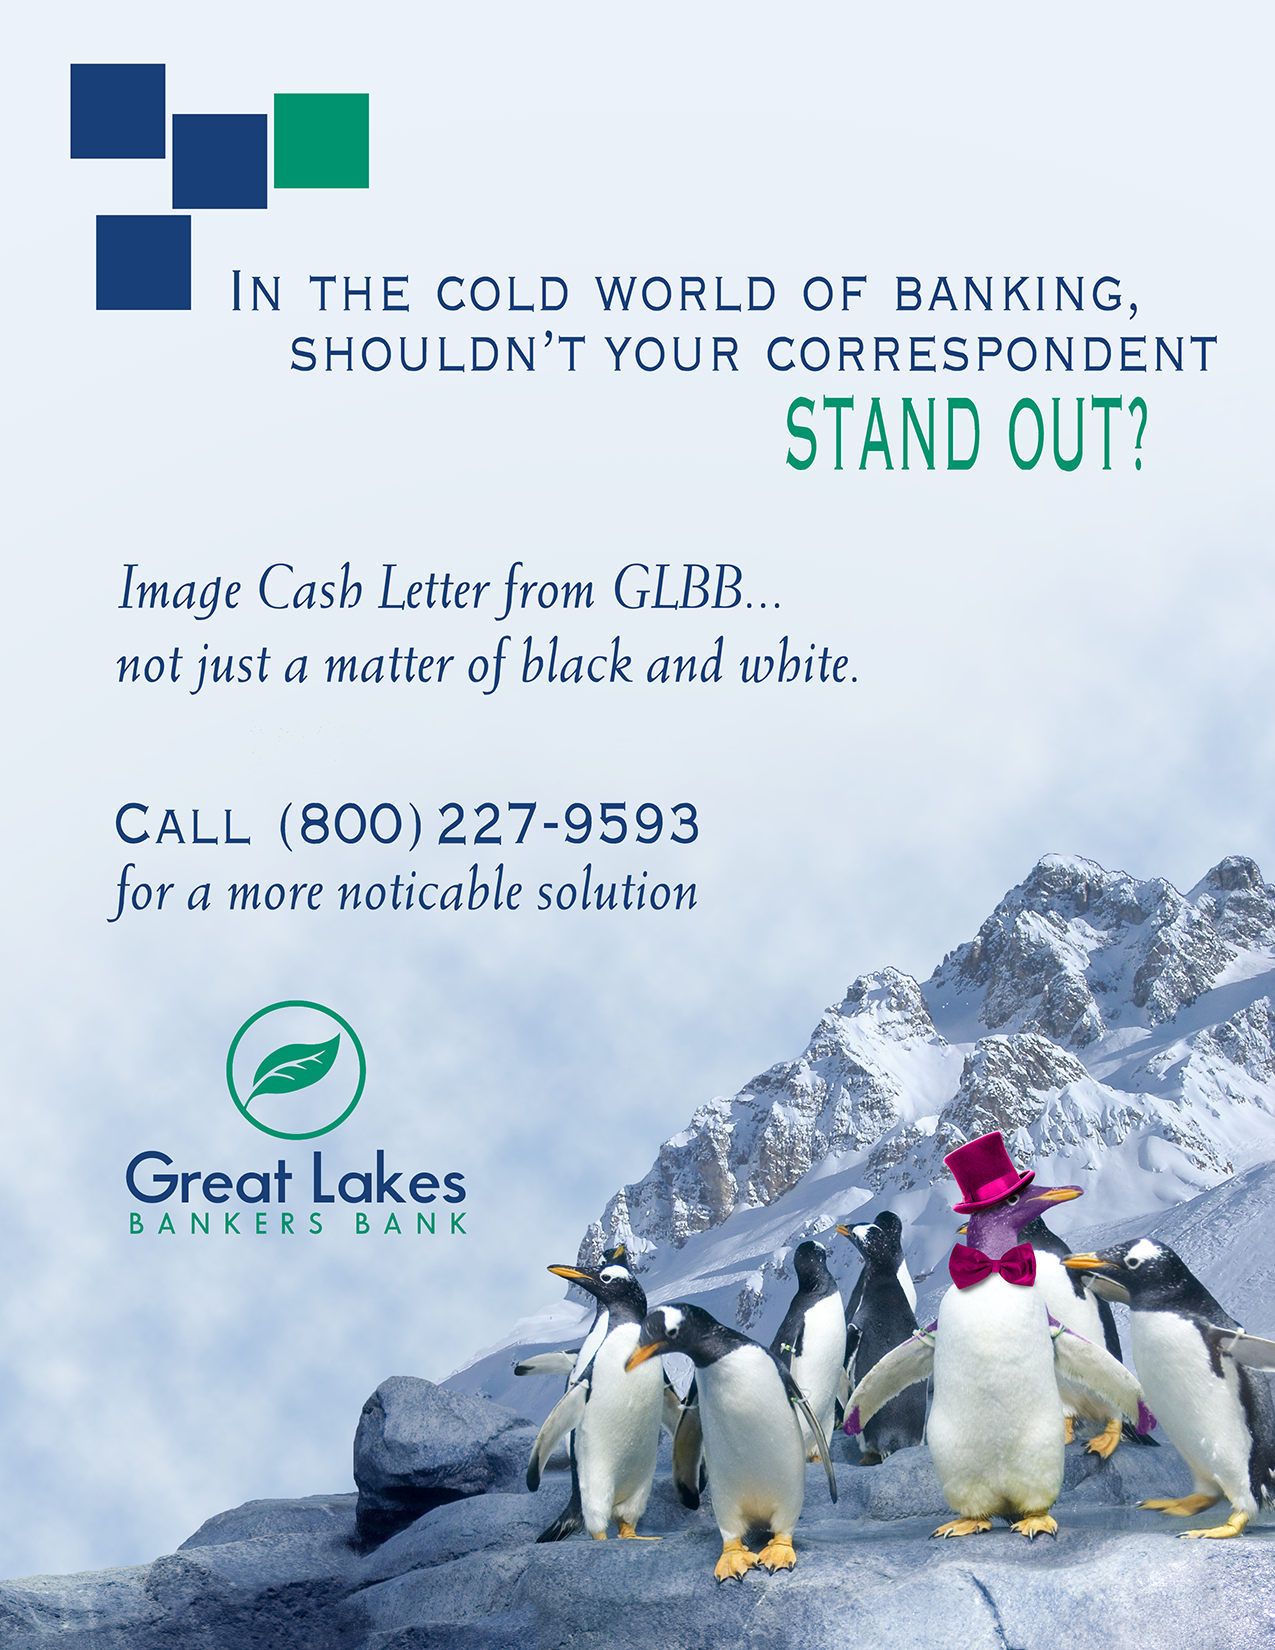 Bank print ad #2 by J-Squared